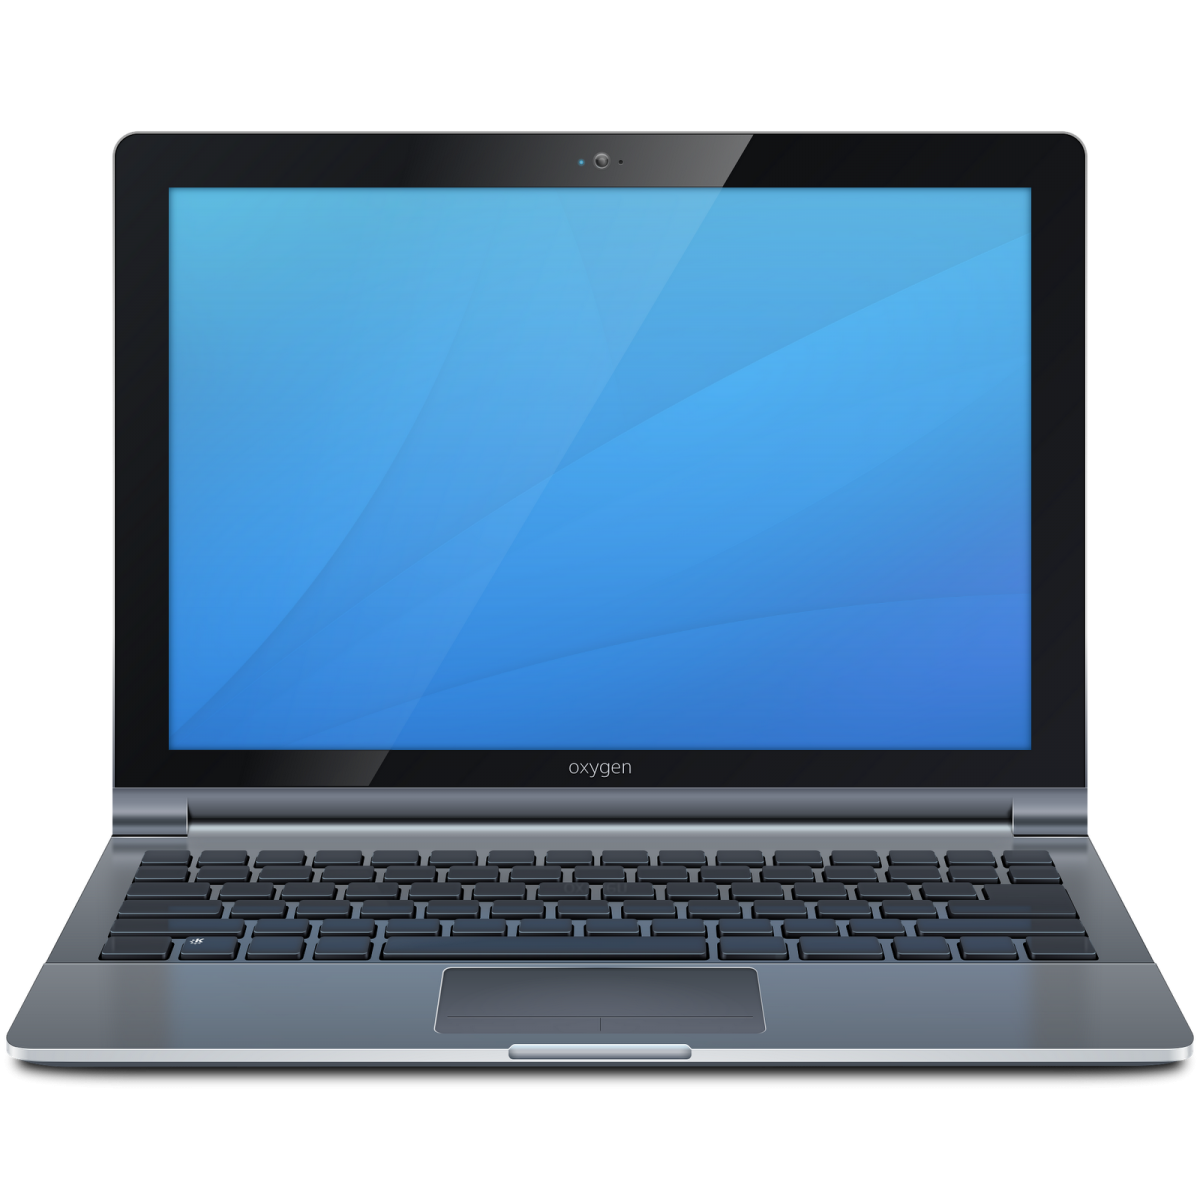 Laptop notebook PNG image image with transparent background 28